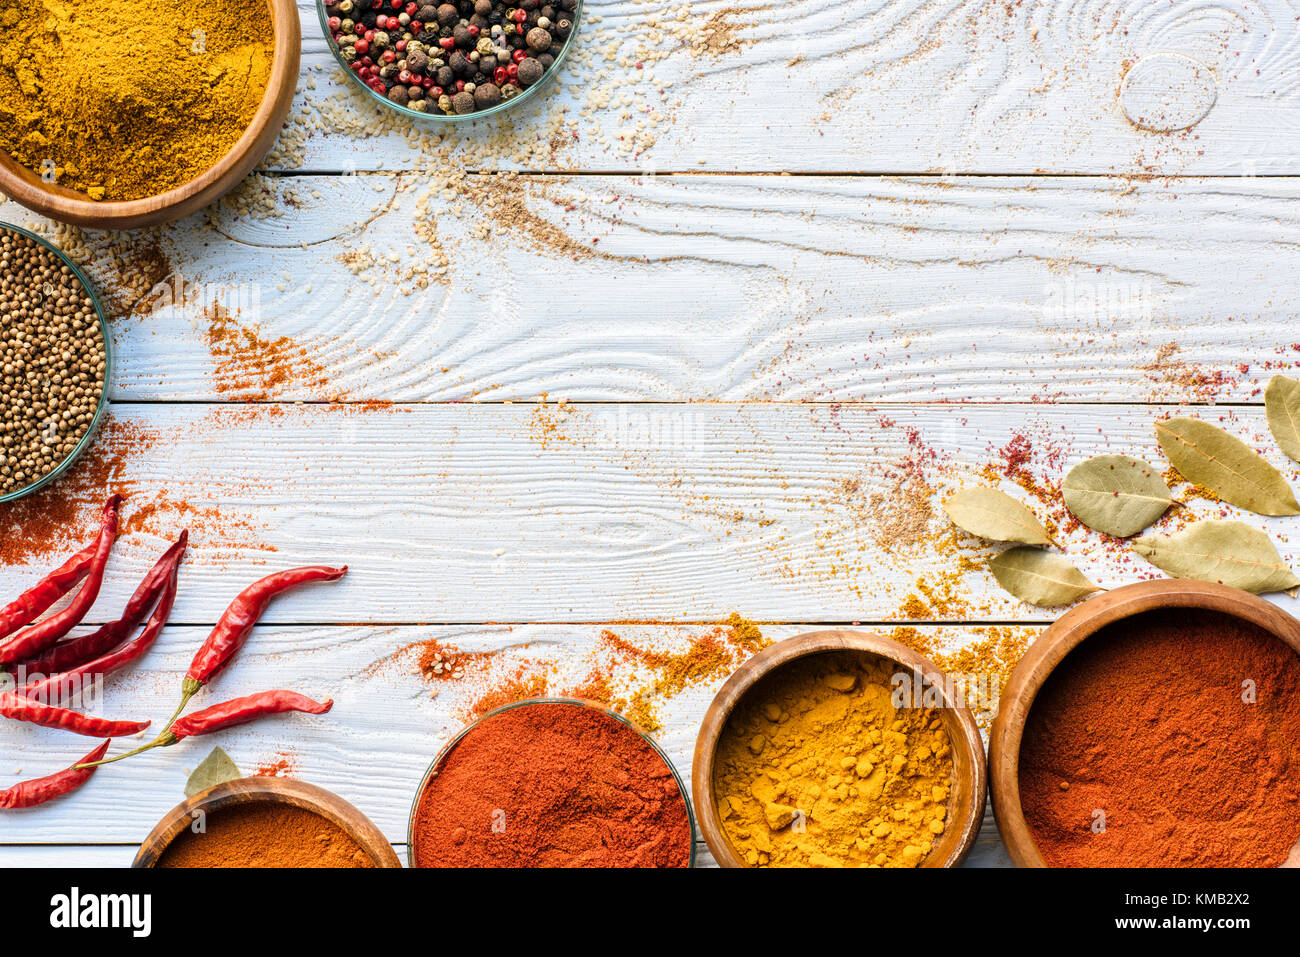 scattered spices and glasses with spices - Stock Image